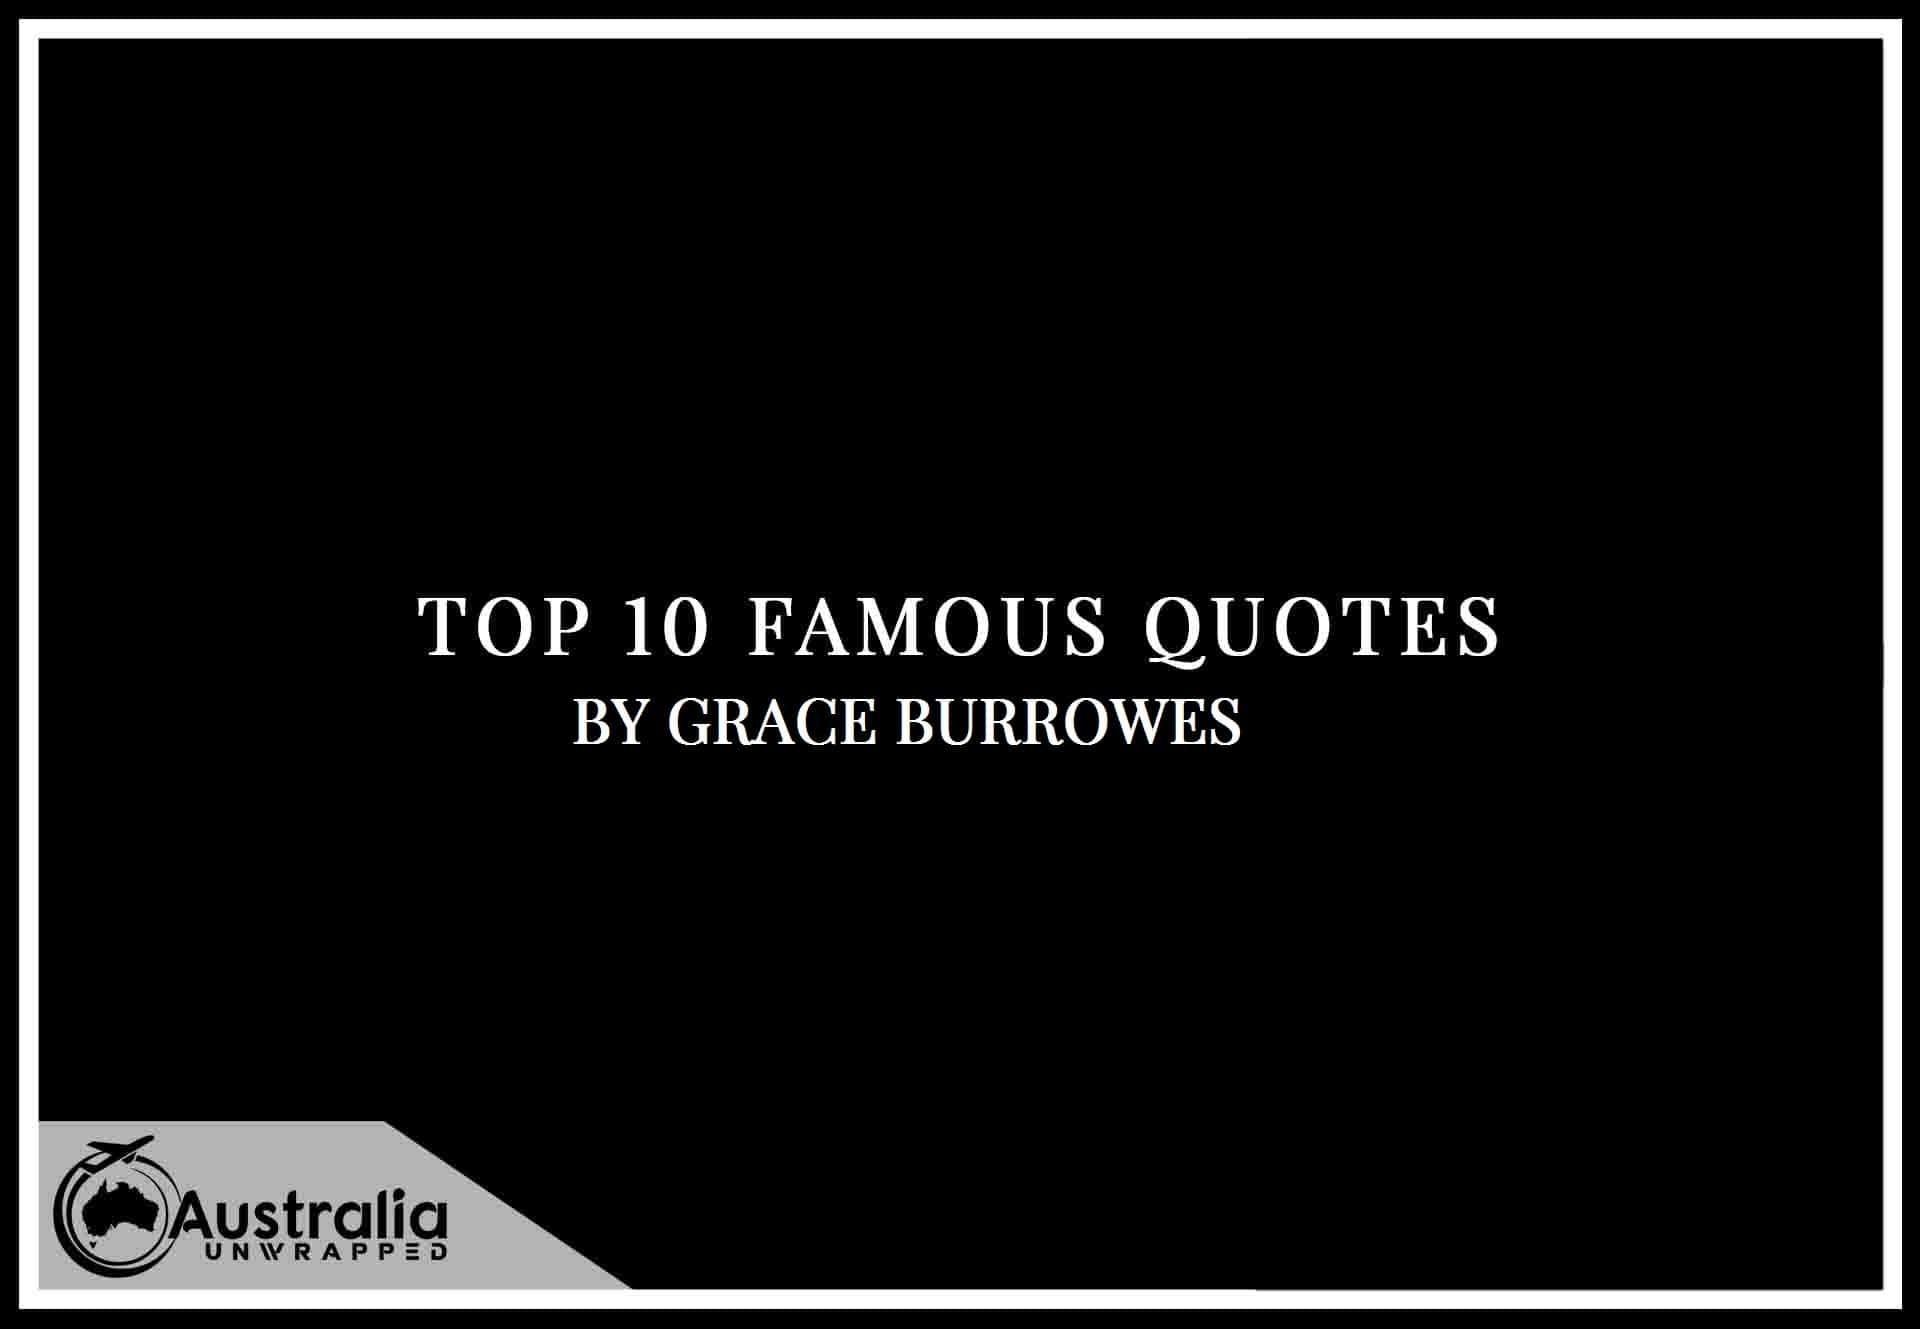 Grace Burrowes's Top 10 Popular and Famous Quotes